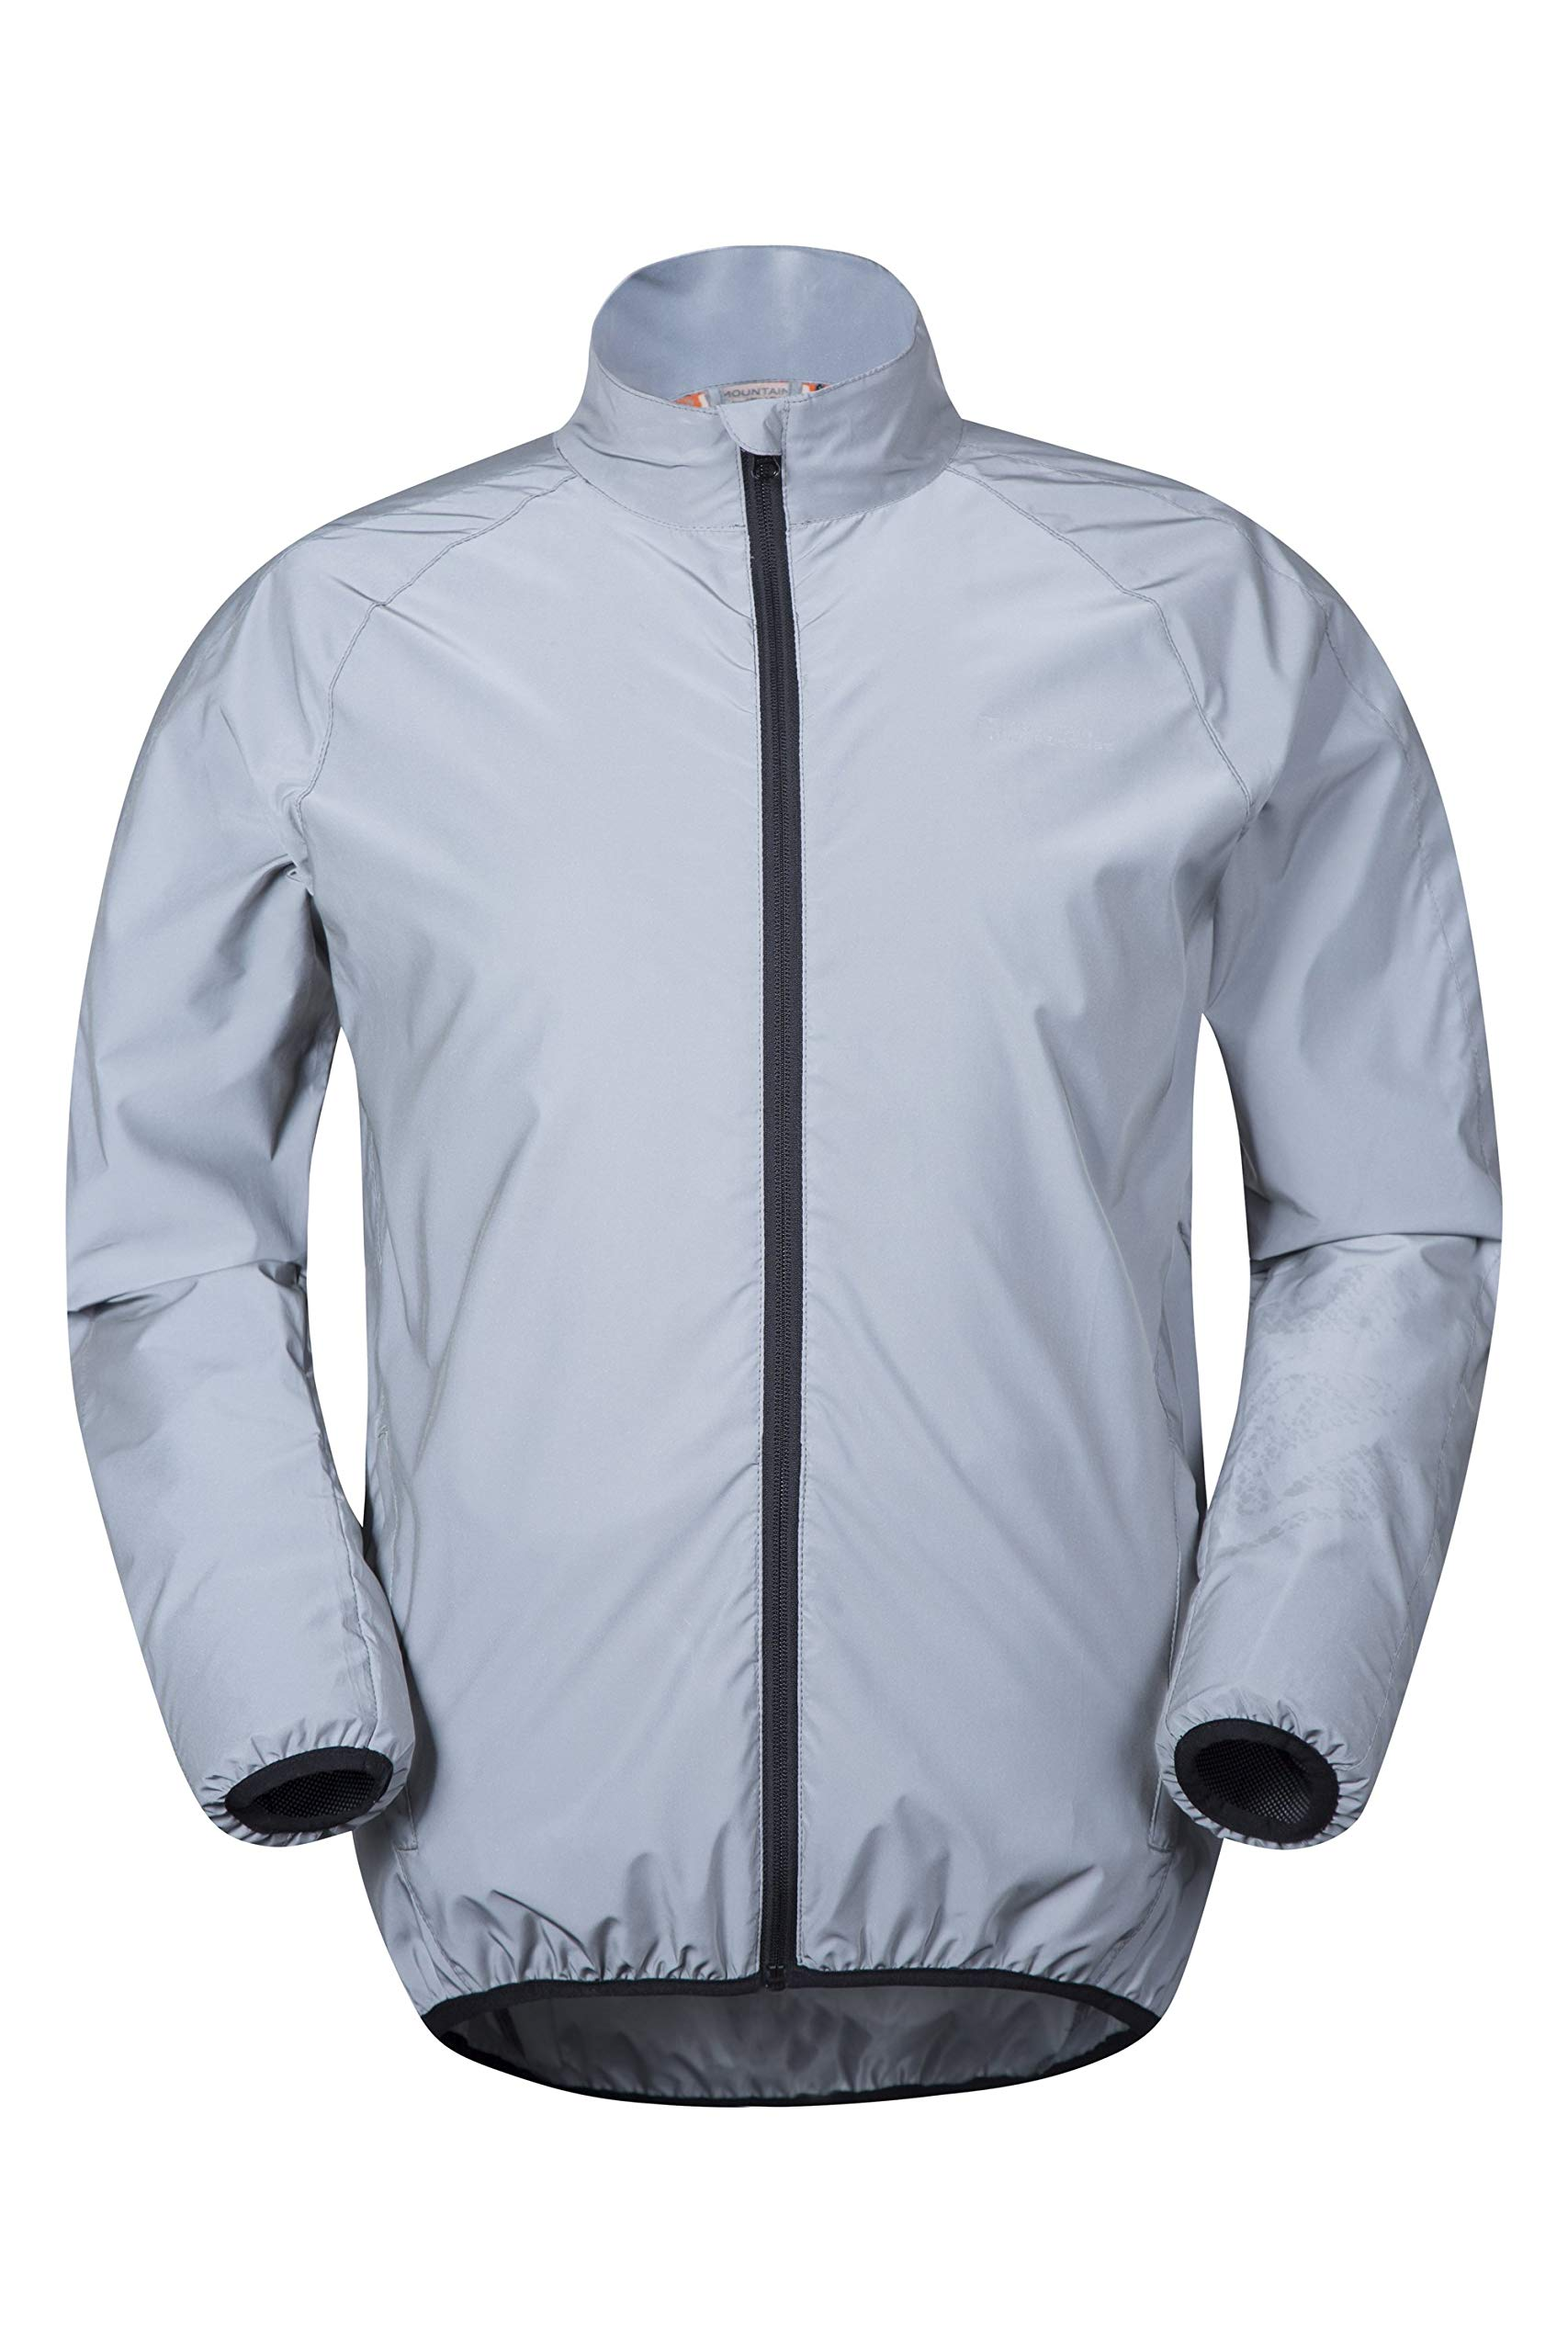 Mountain Warehouse Reflective Jacket Cycling